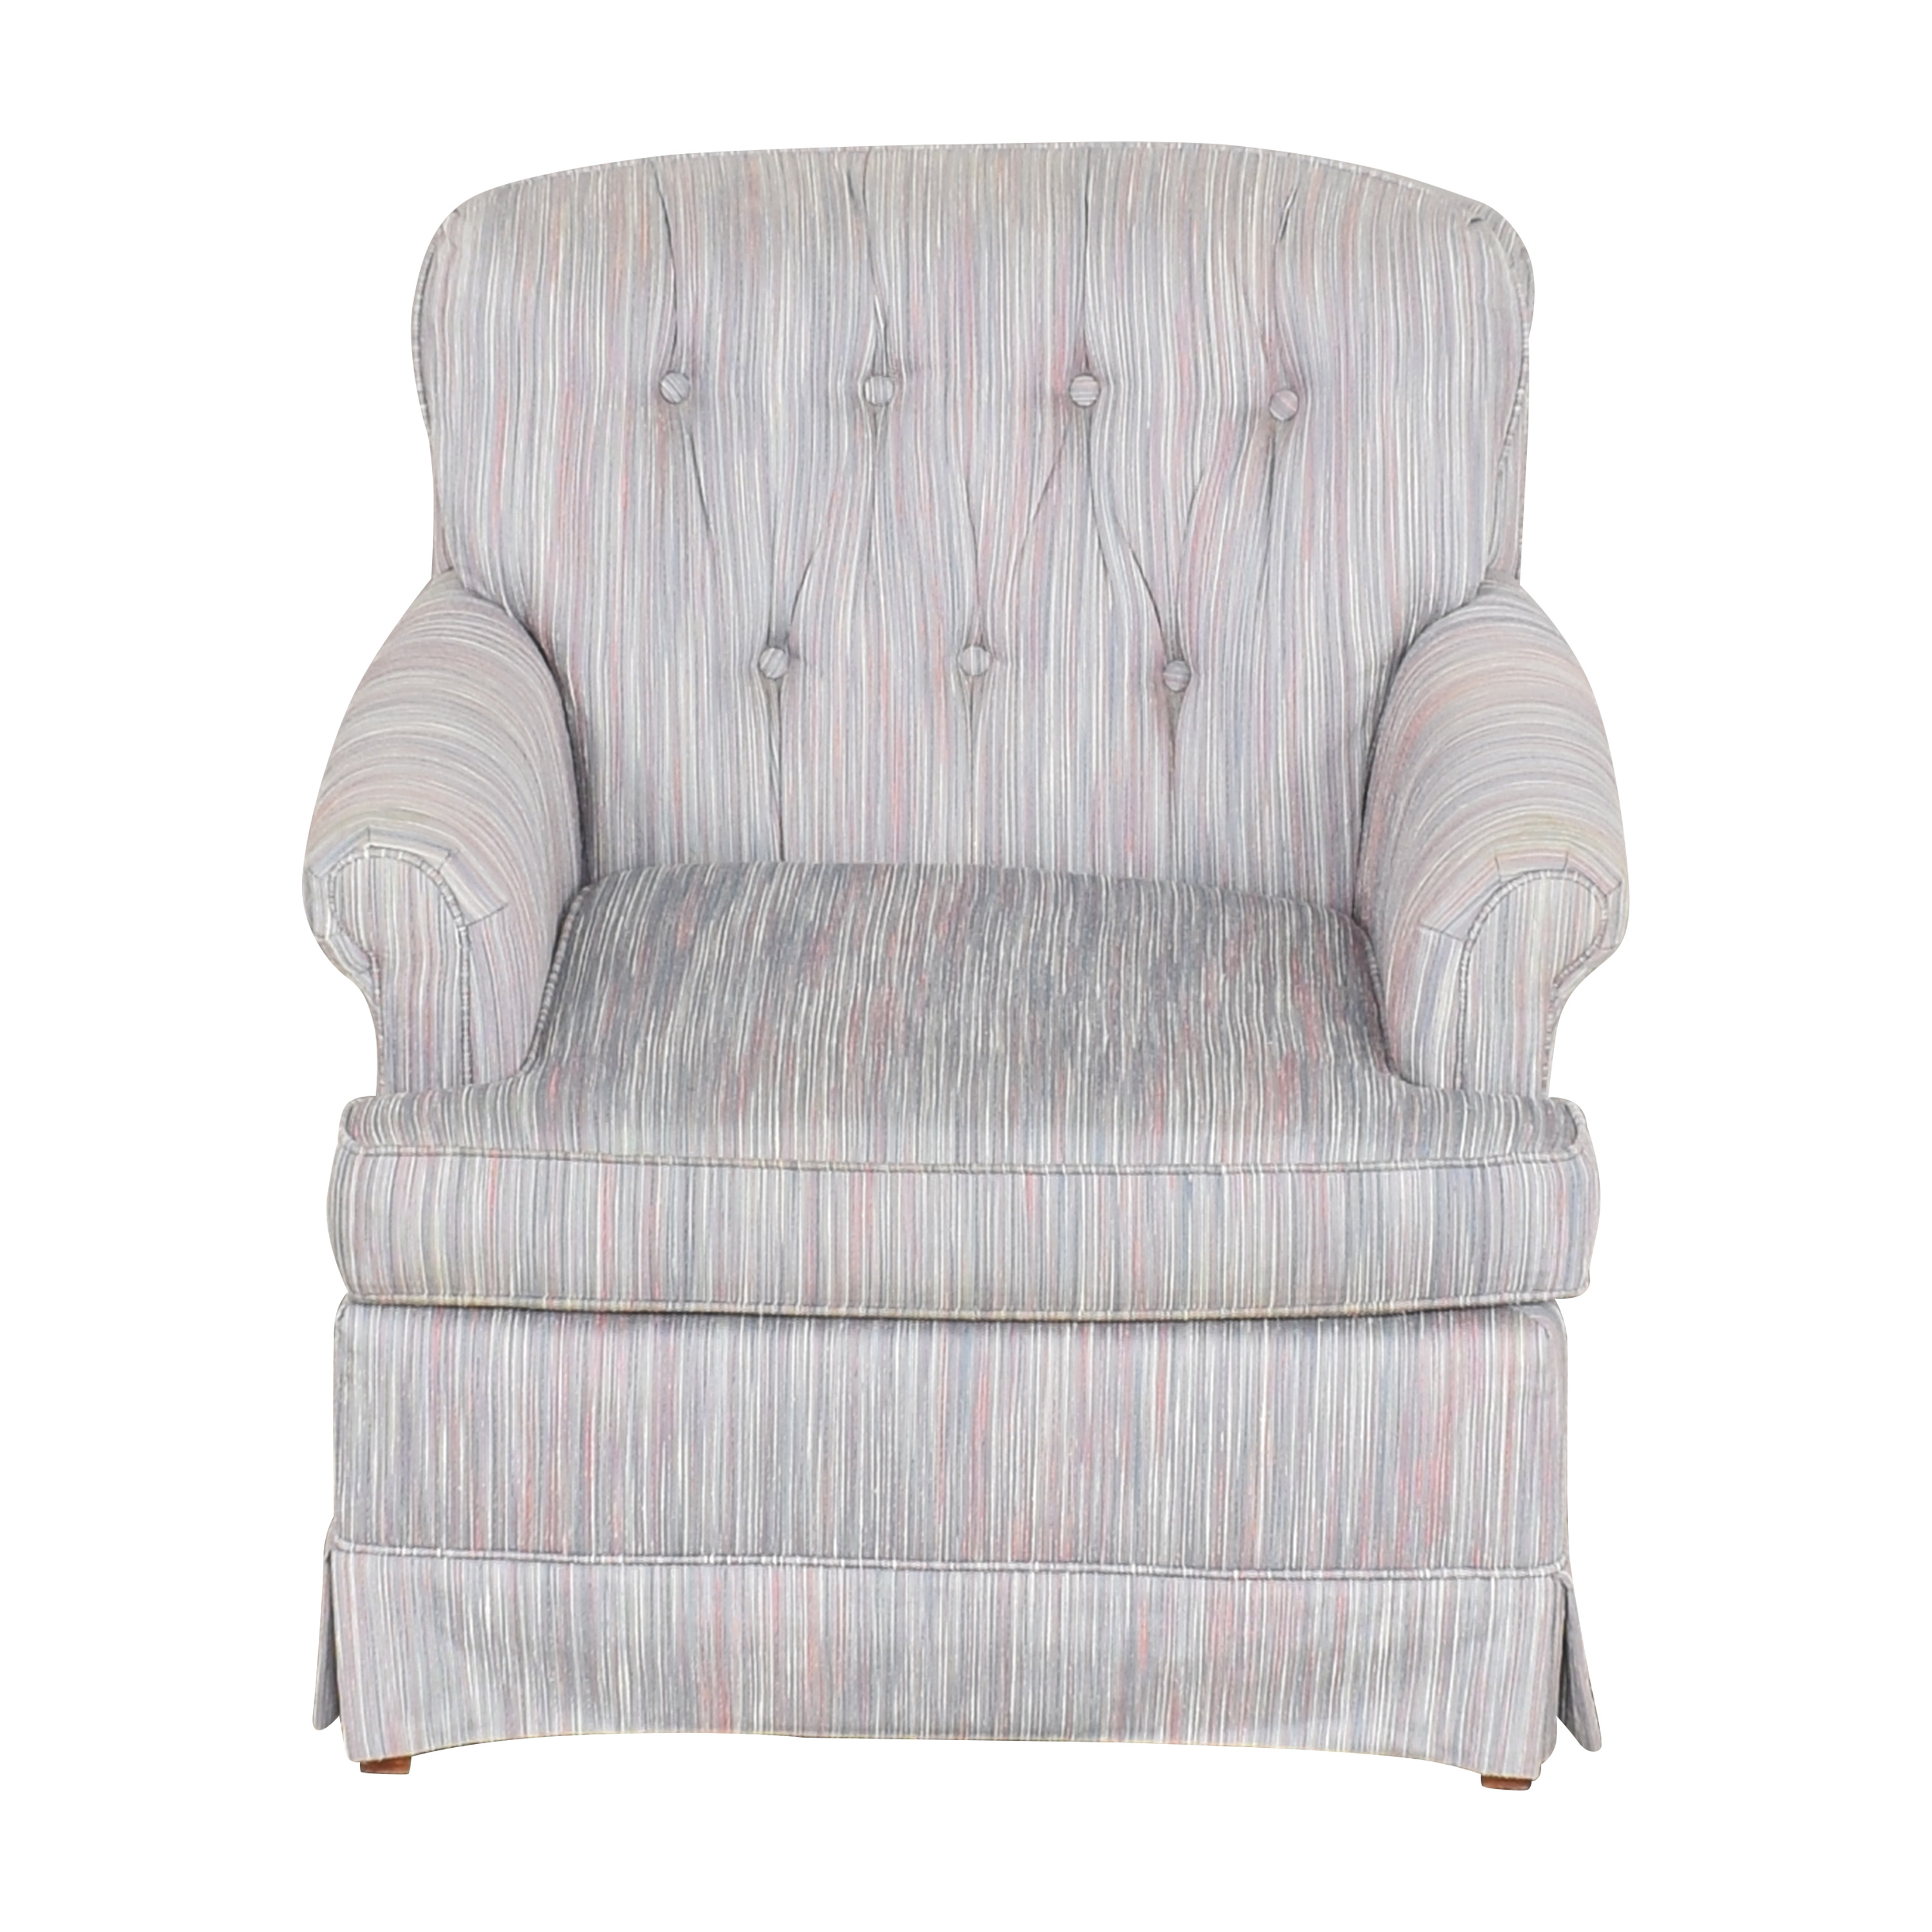 Hickory-Fry Hickory-Fry Tufted Accent Chair price